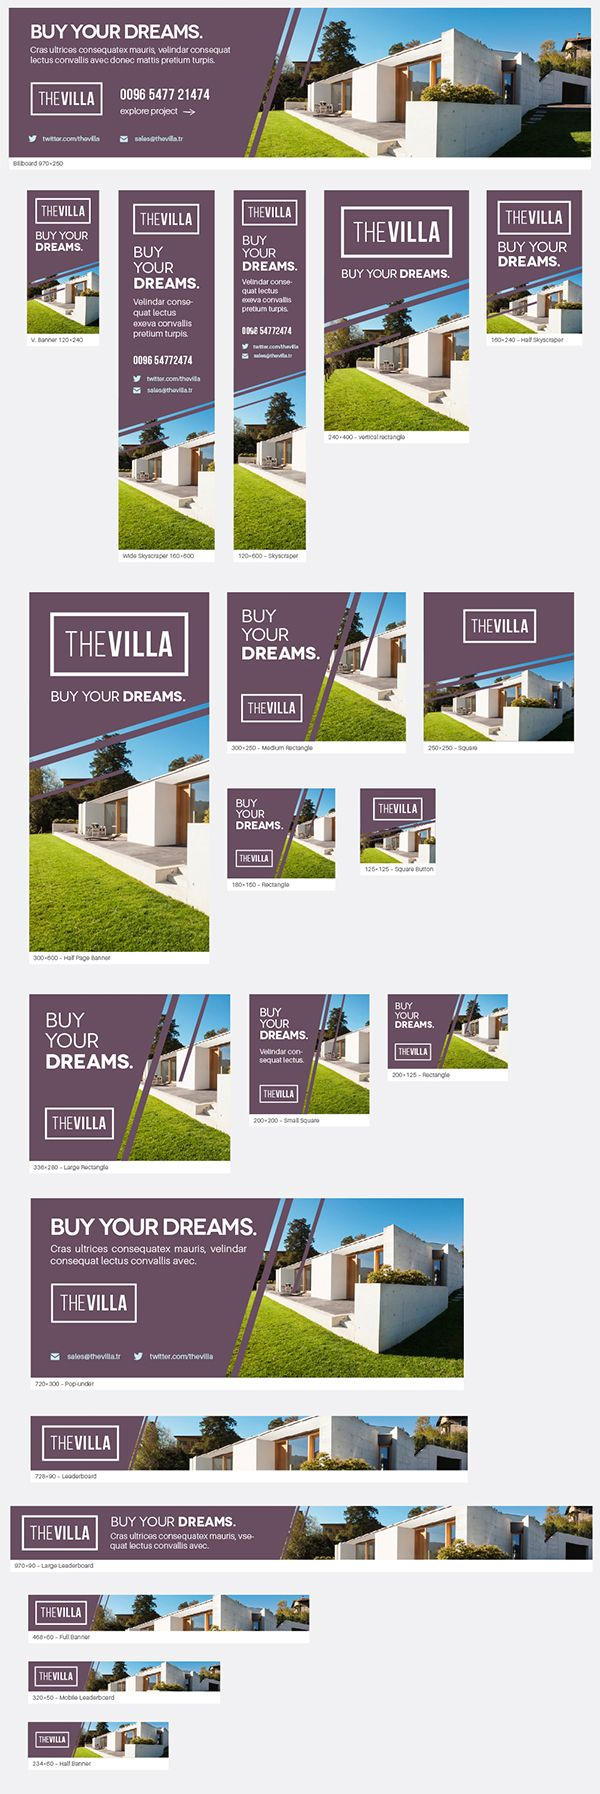 Real Estate Banners Real Estate Banner Real Estate Advertising Banner Ads Design